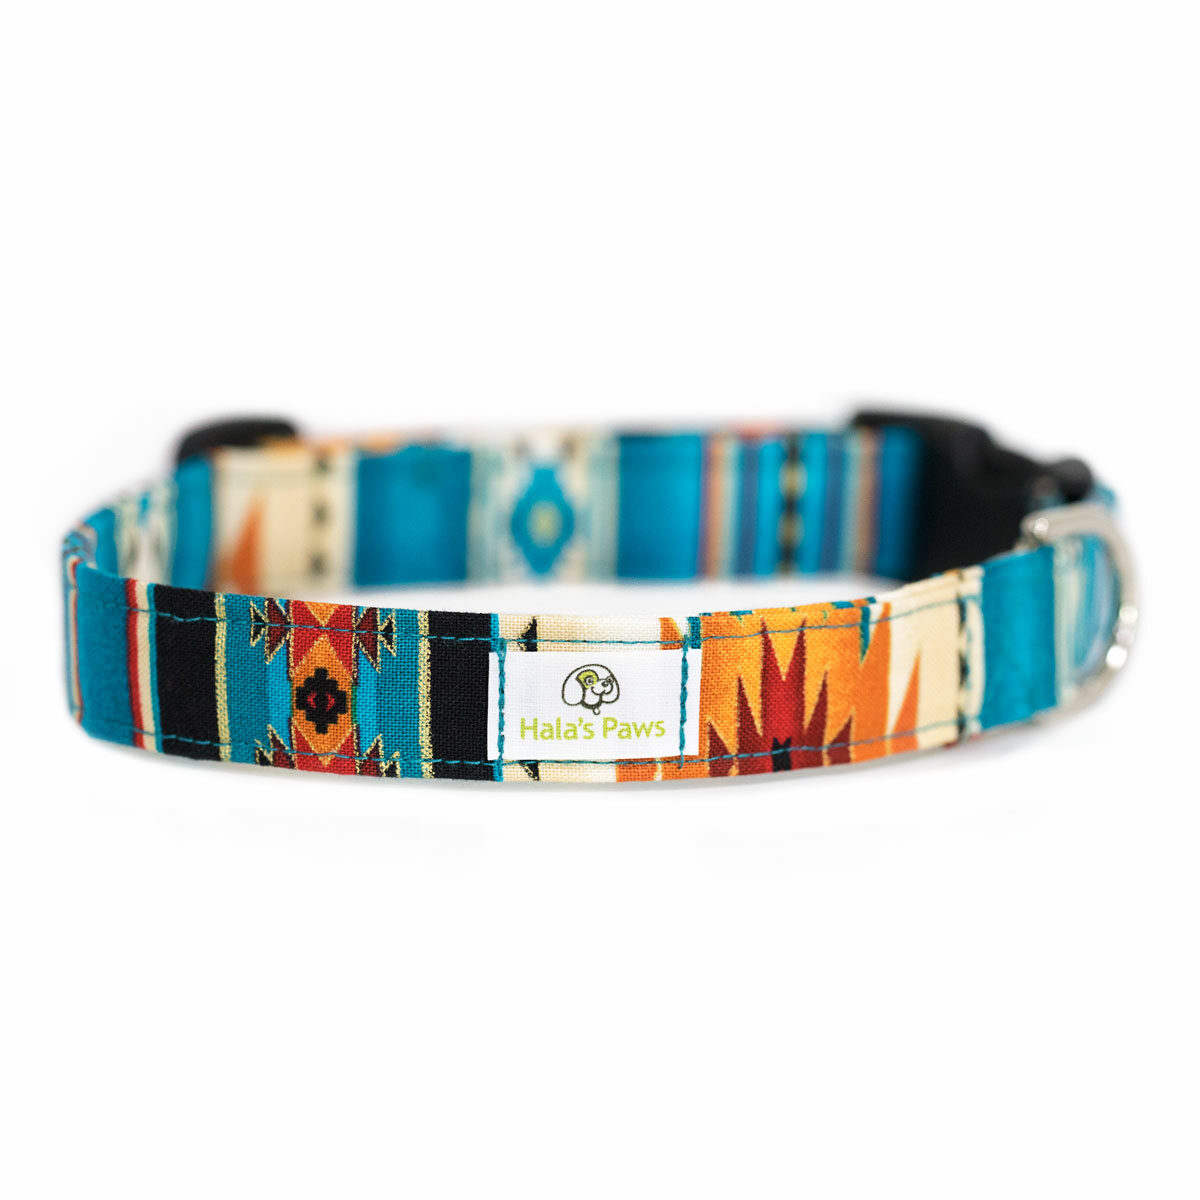 Hala's Paws Collar Blue Aztec